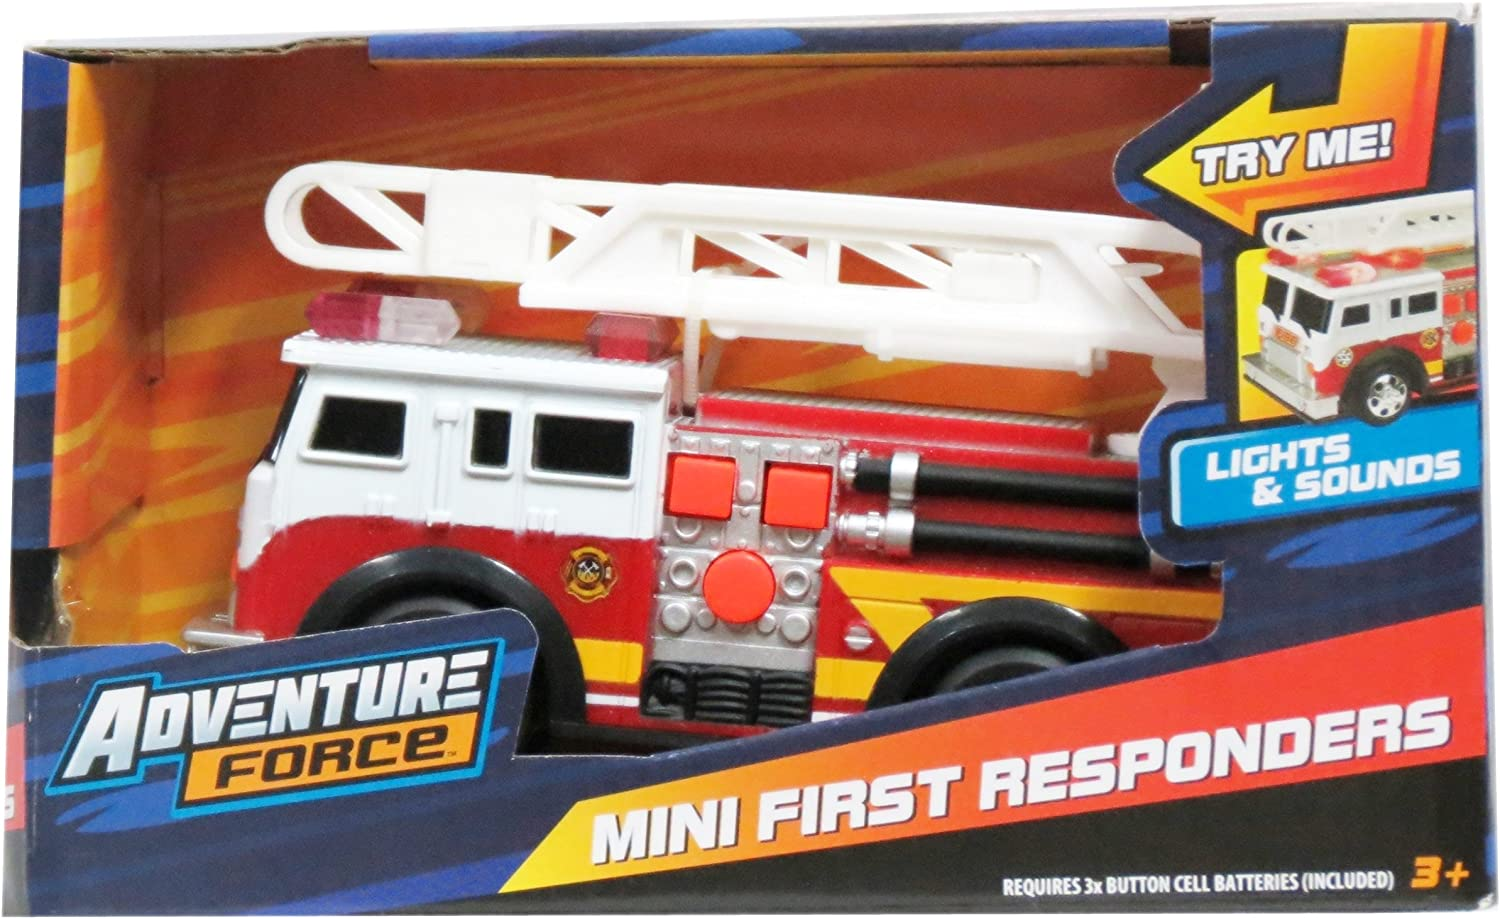 Mini First Responders Fire Engine with Ladder Lights & Sounds